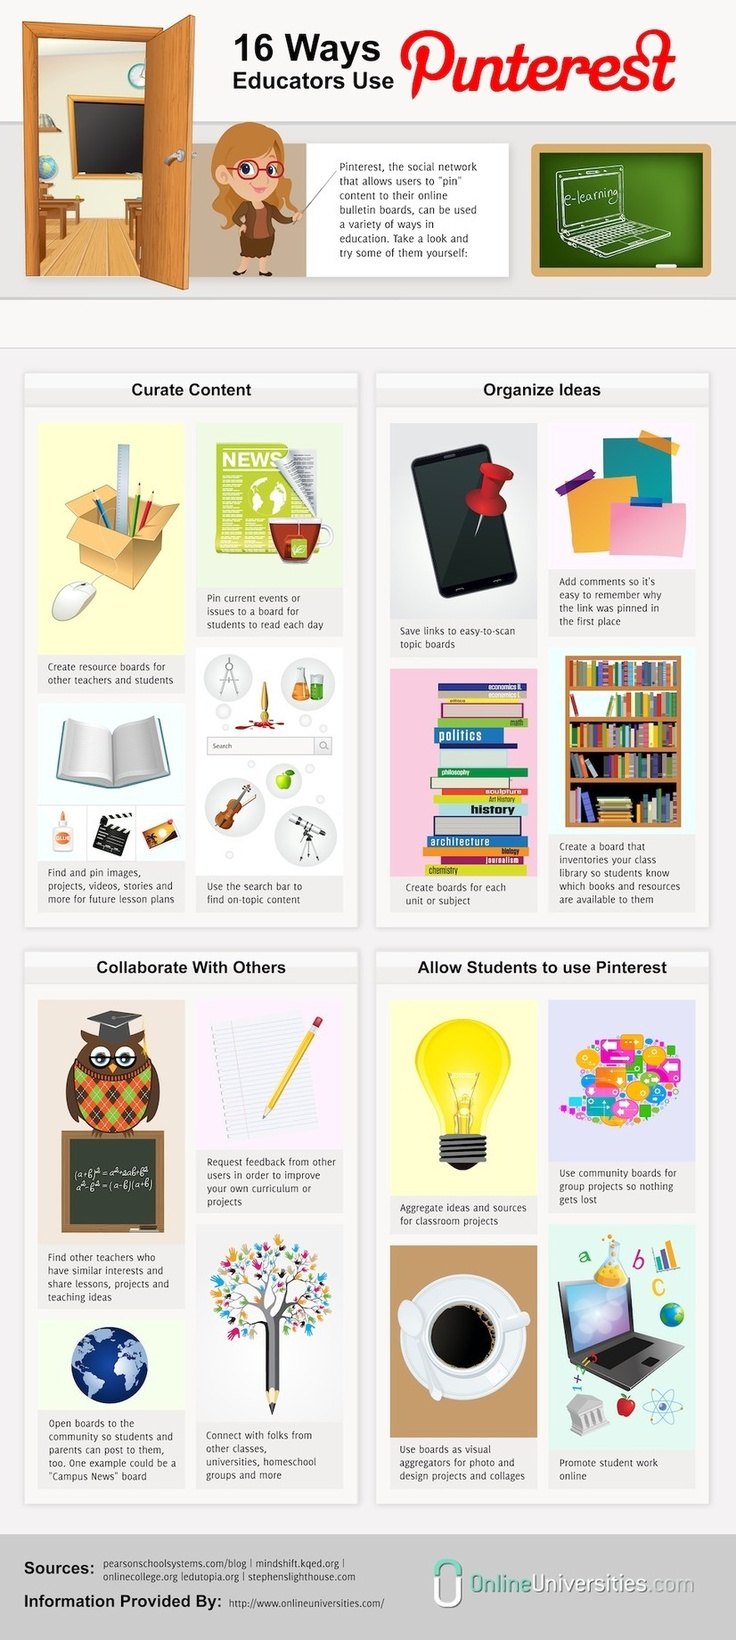 [INFOGRAPHIC] 16 Ways Educators Can Use #Pinterest